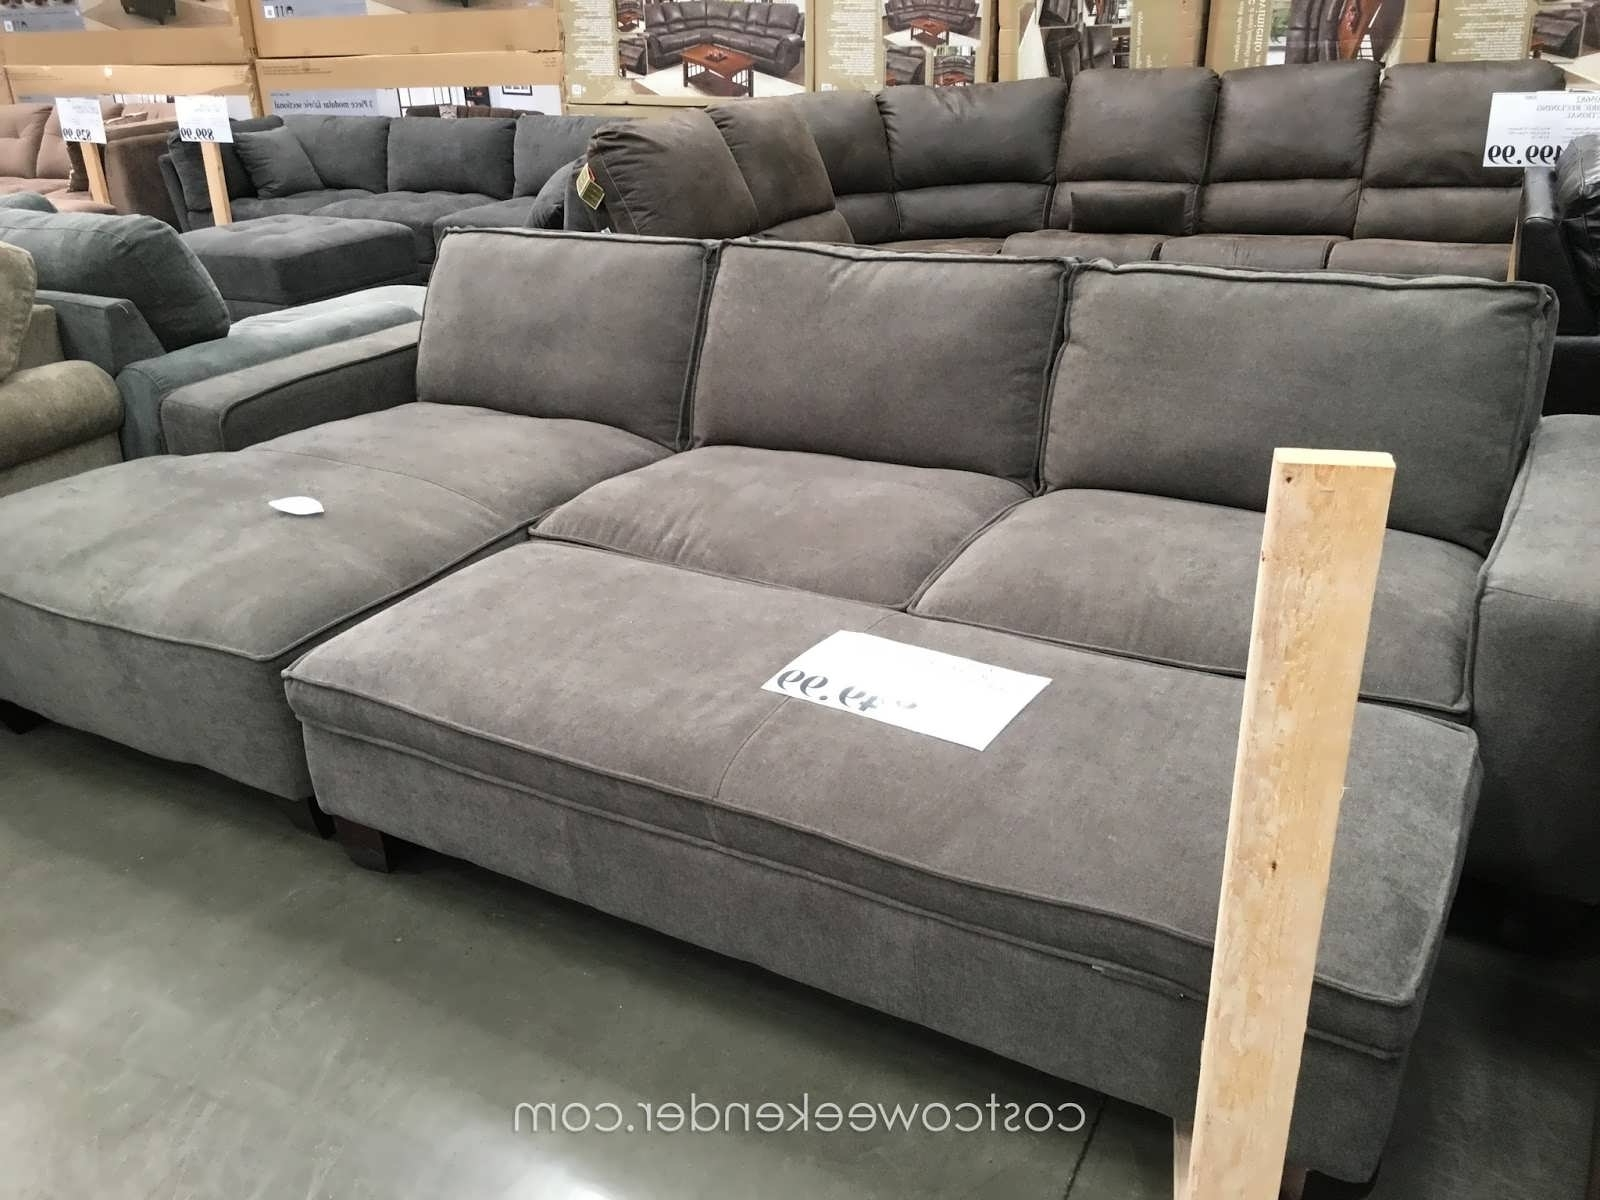 Deep Sectional Sofas With Chaise With Latest Sofa : L Sofa Modular Sectional Sofa Couch With Chaise Sectional (View 2 of 15)